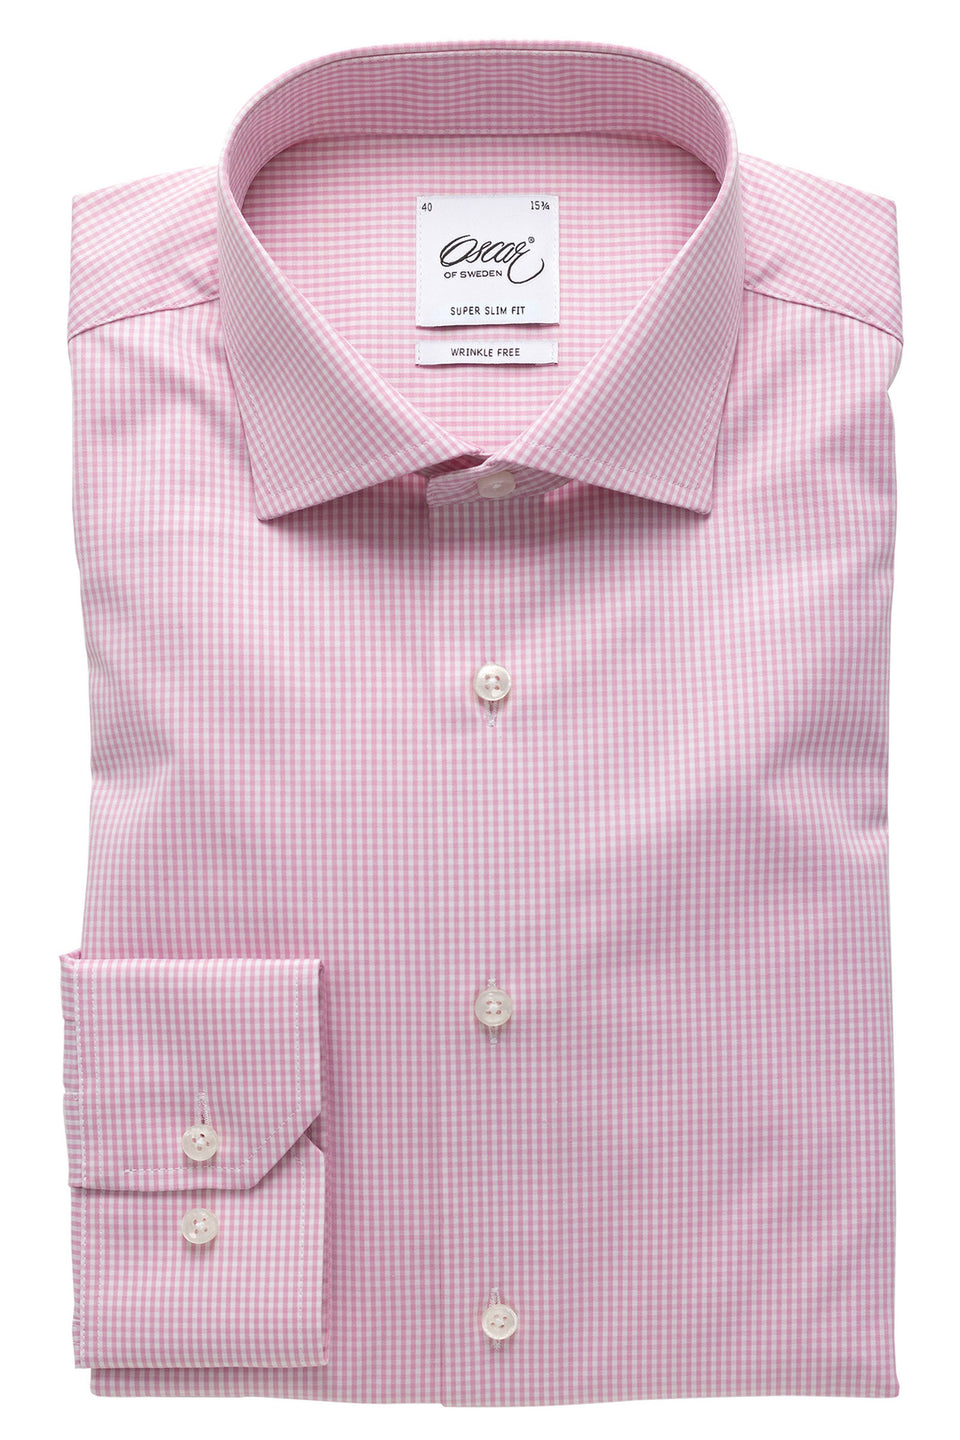 Pink checked super slim fit shirt